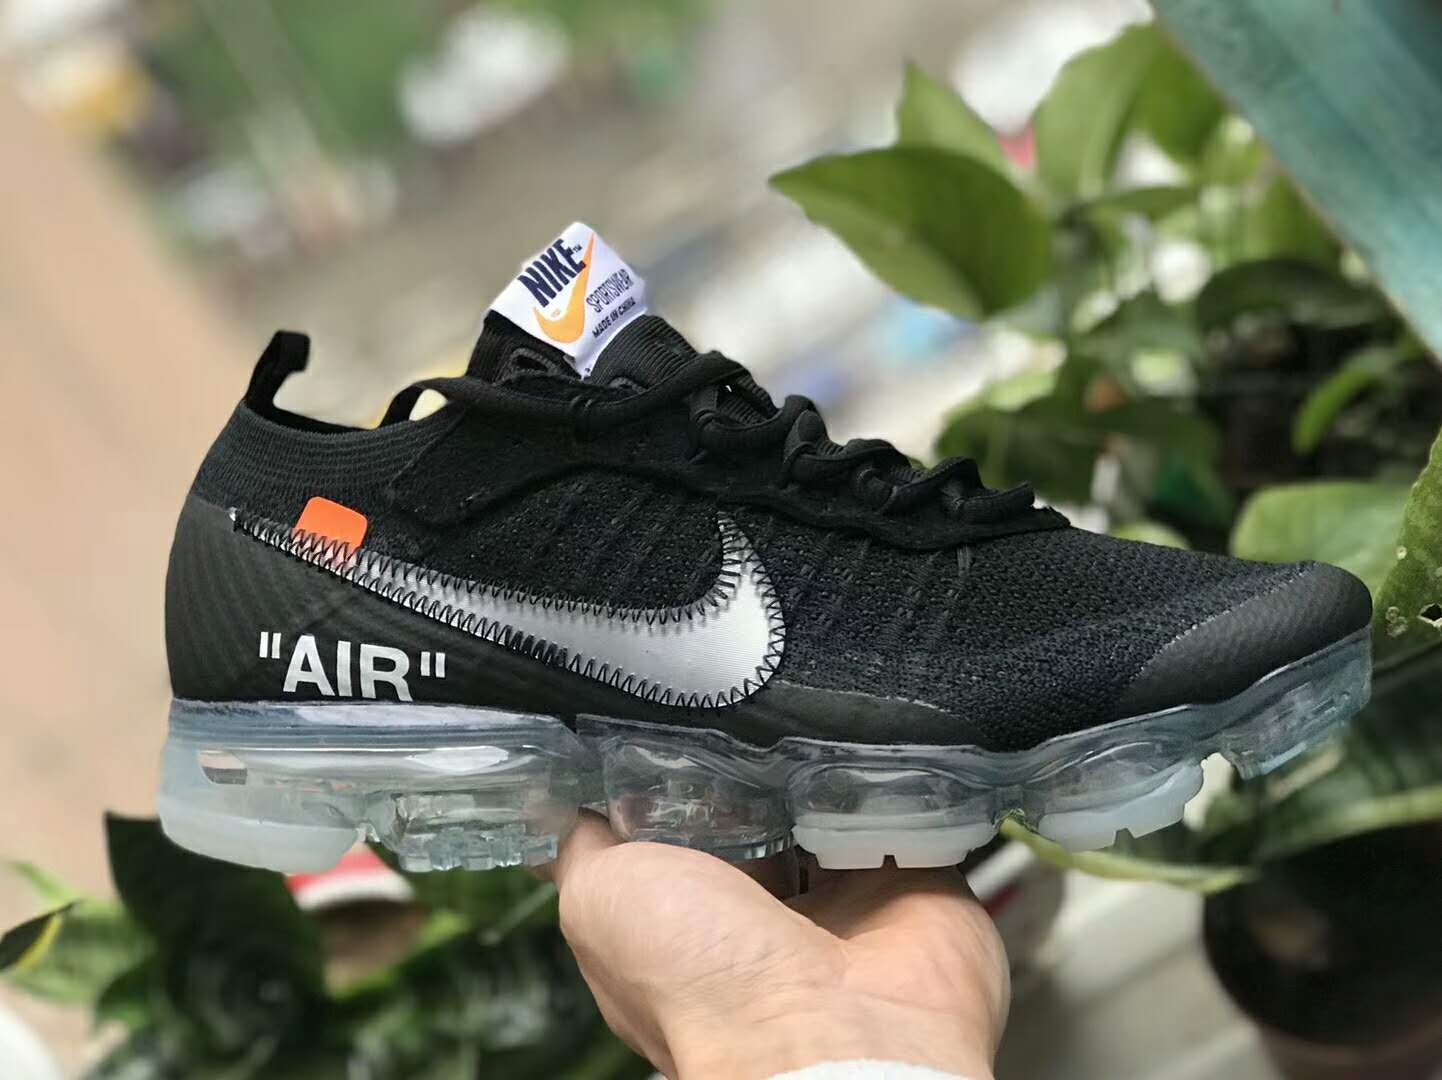 promo code 846c2 7b7ce Off-White x Nike Air VaporMax 2018 Black AA3831-002